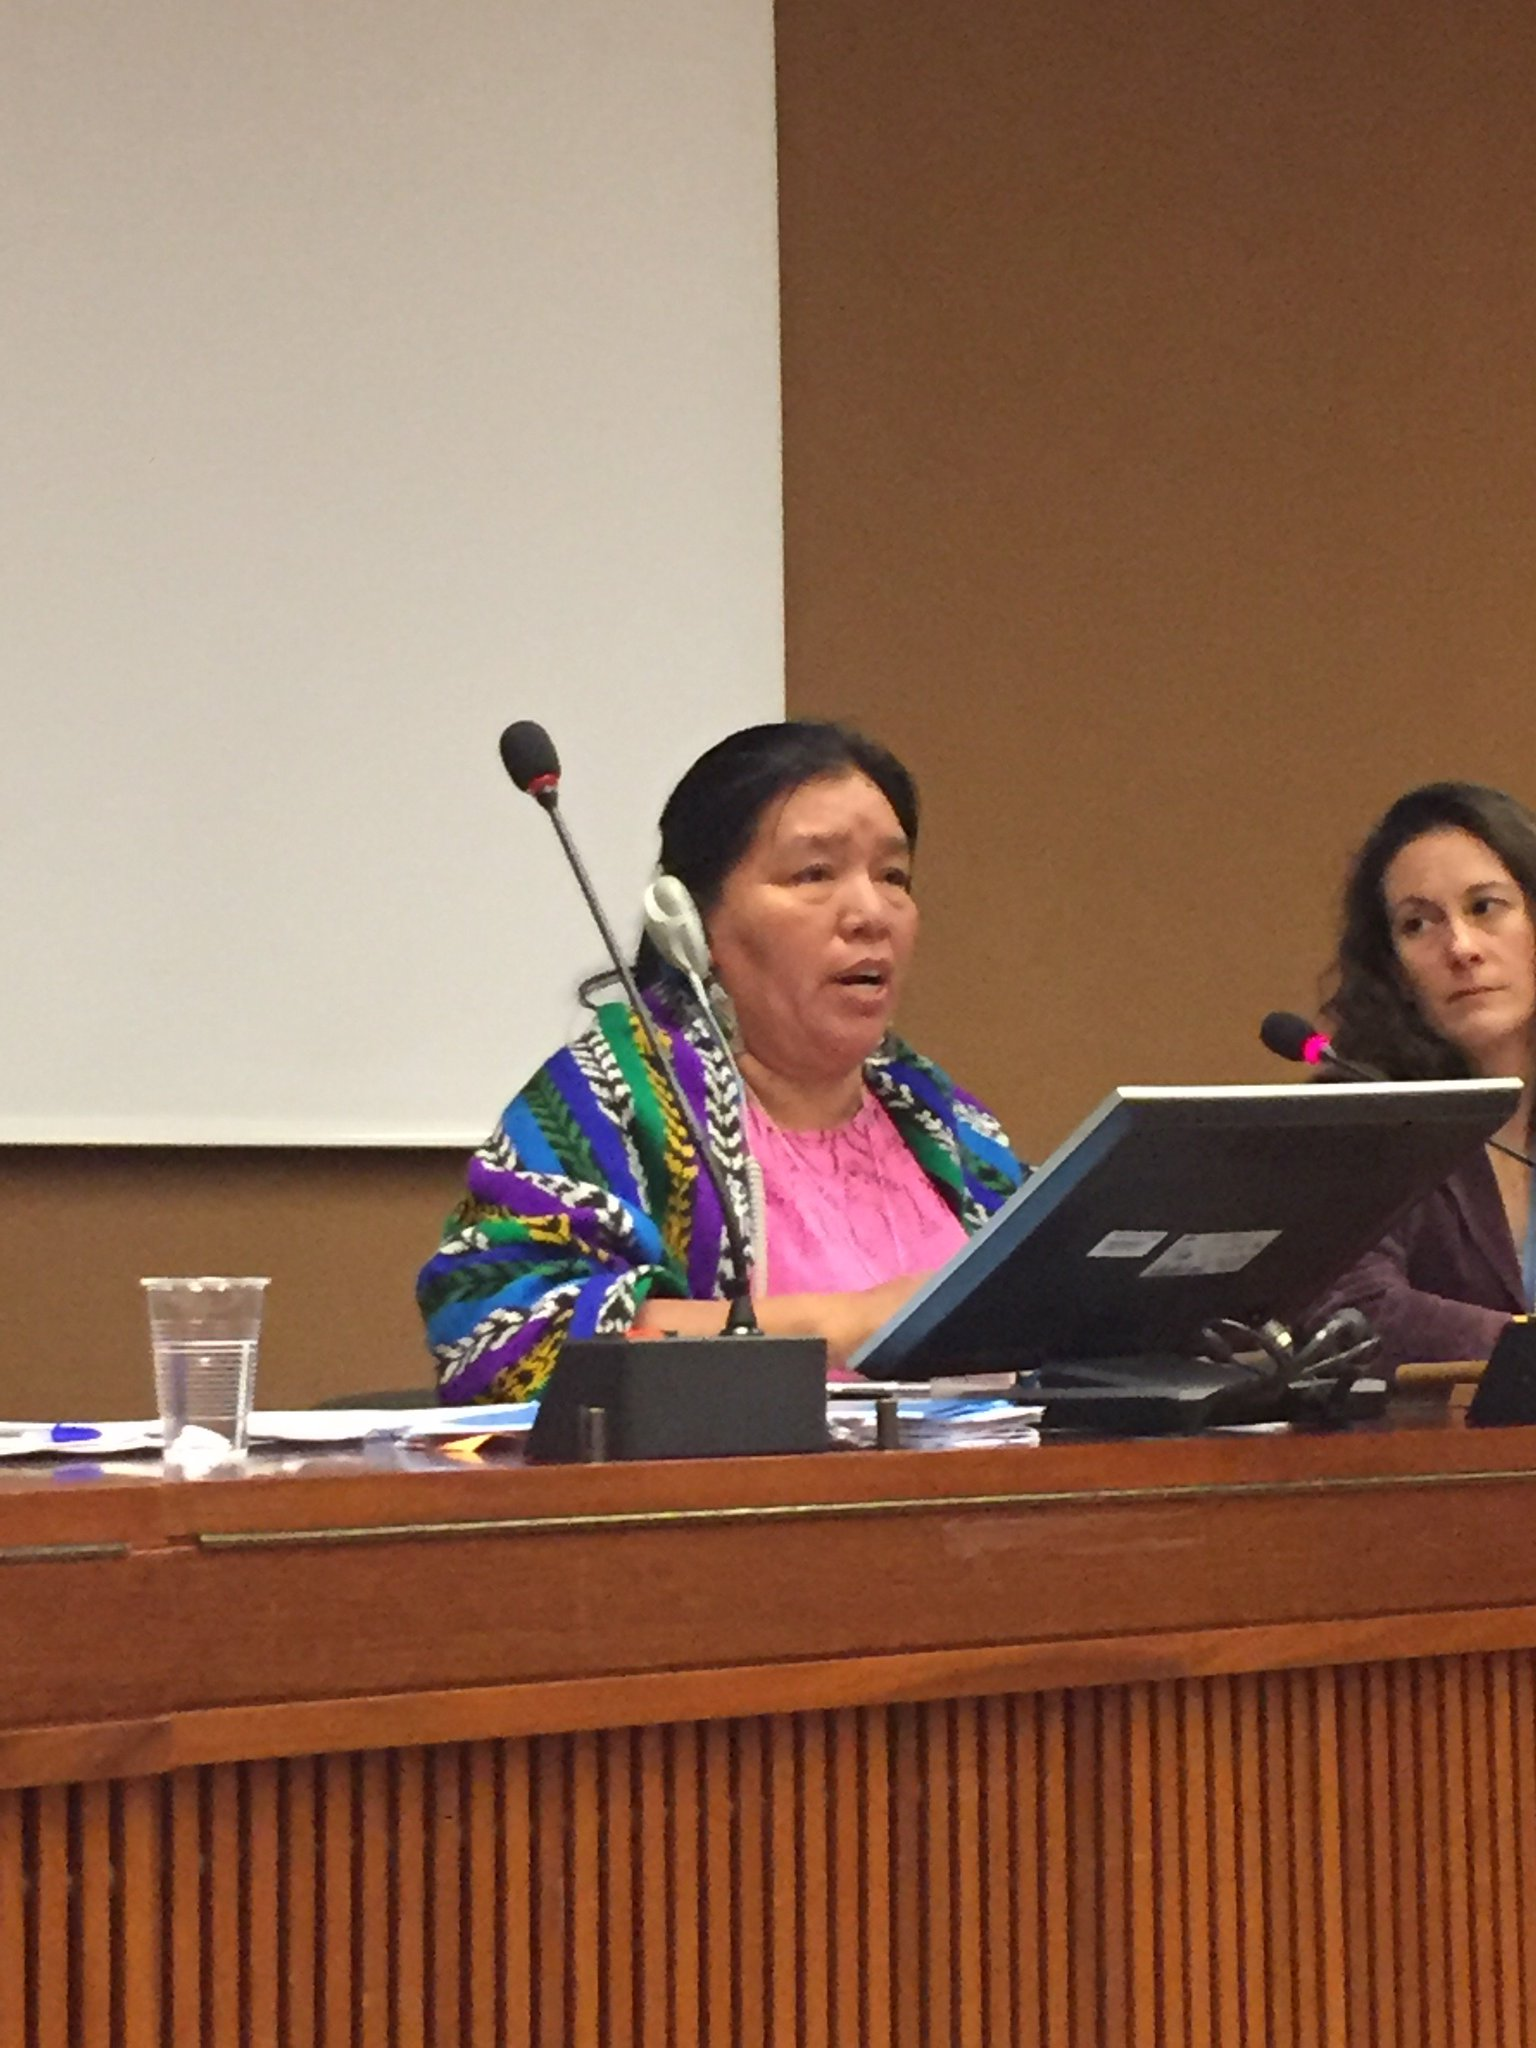 #IndigenousPeoples and #women most affected by TNCs and OBEs #humanrights abuses in Guatemala #BindingTreaty #stopcorporateabuse https://t.co/1H7nSePPPE